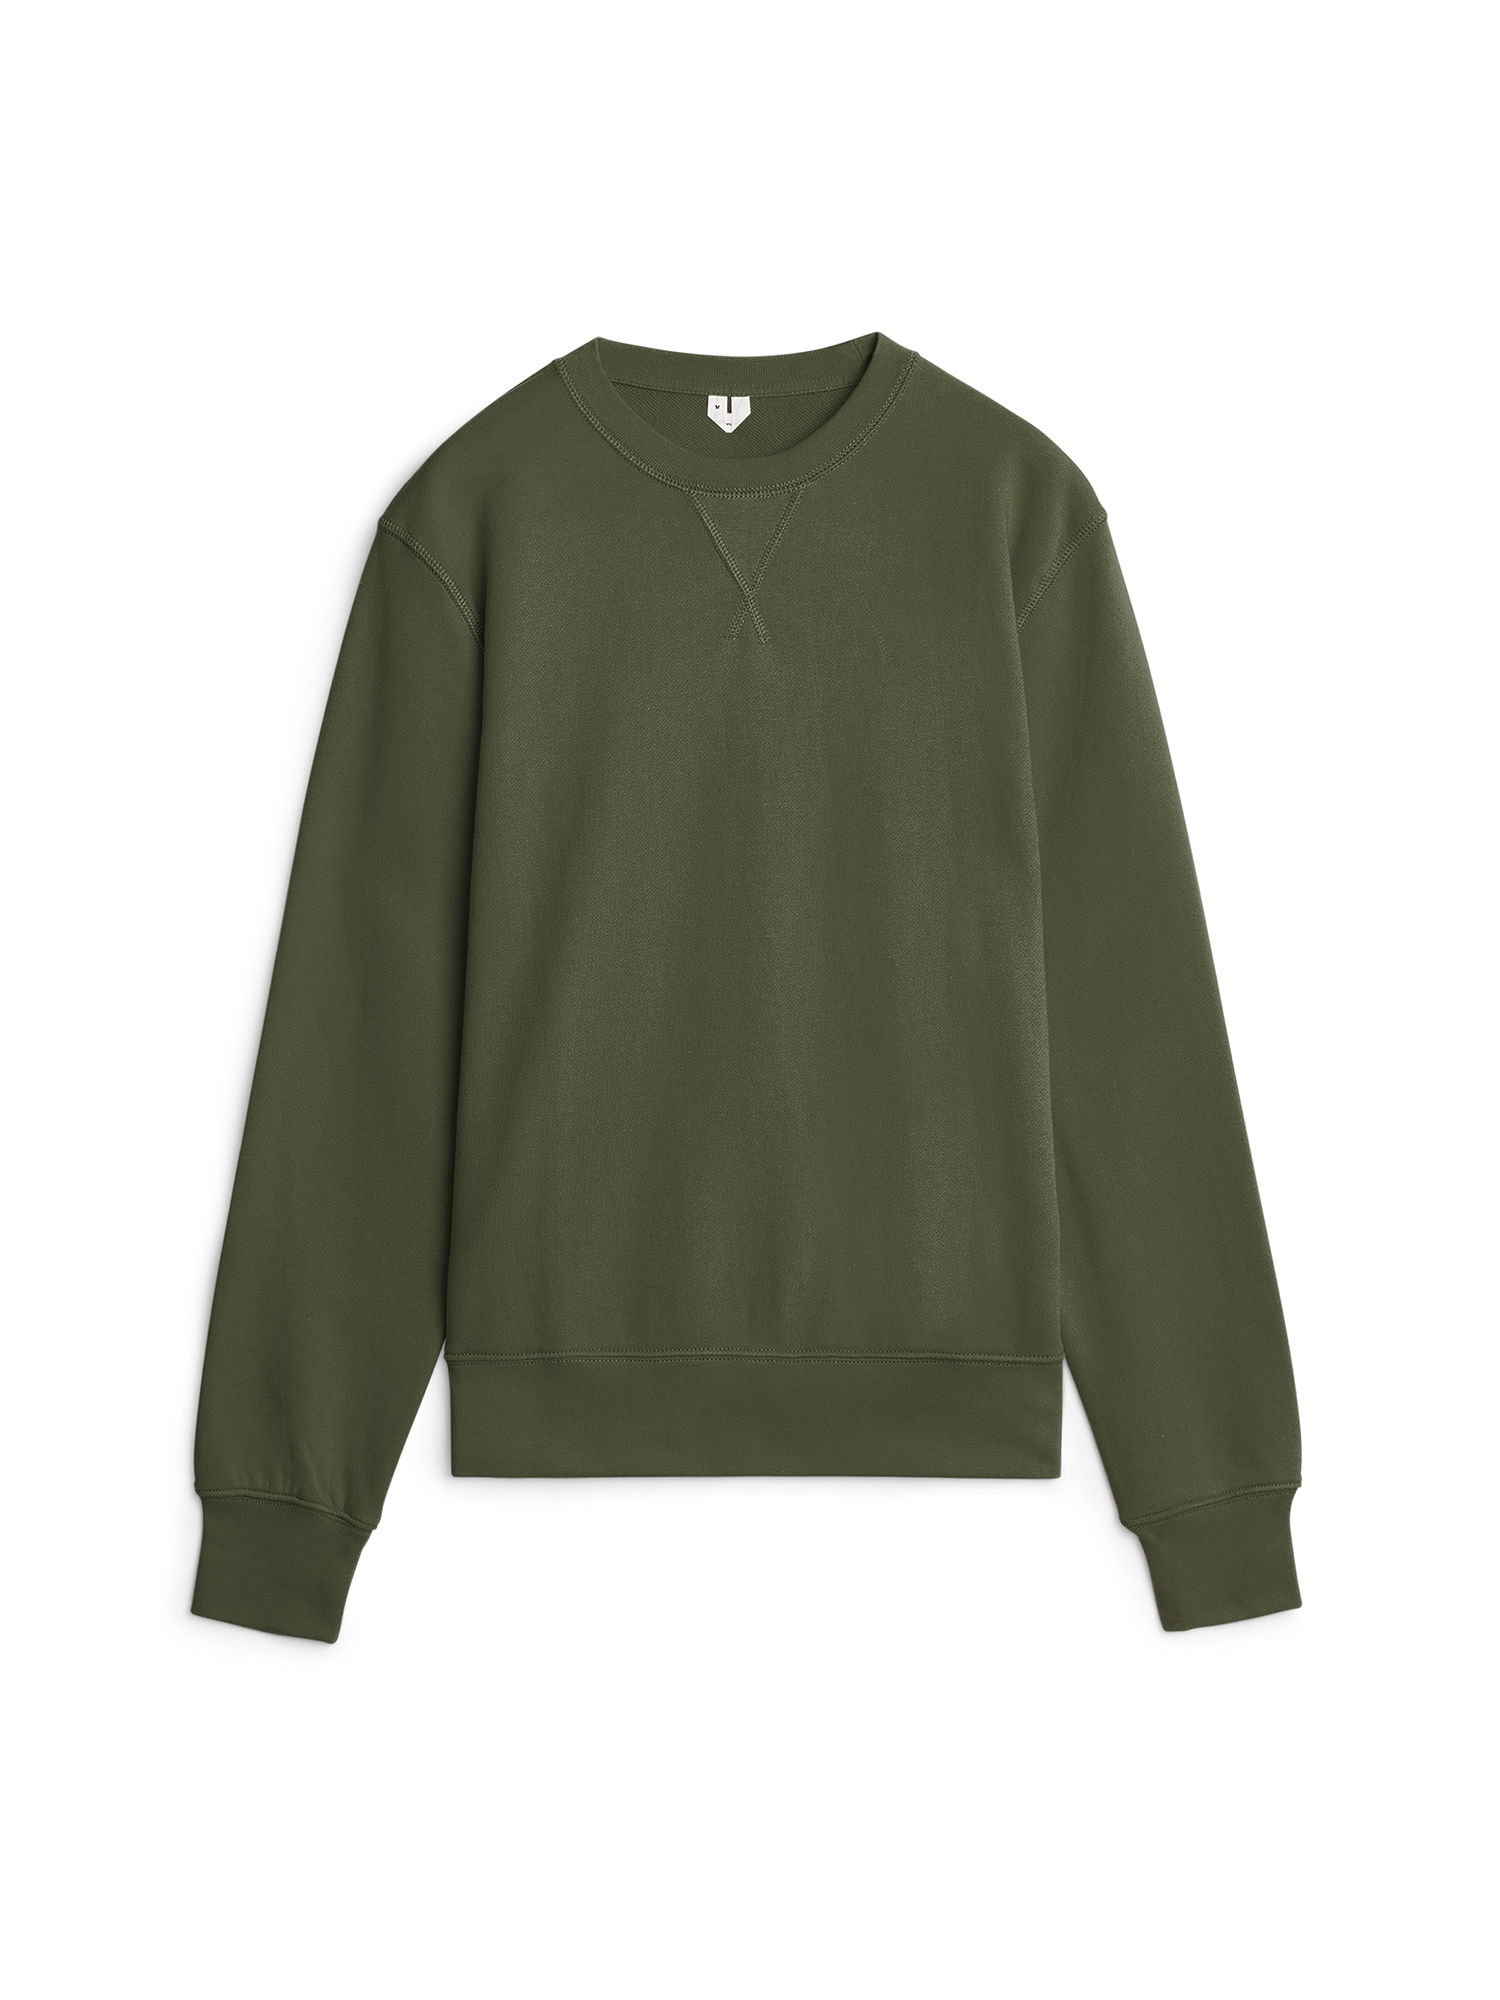 Fabric Swatch image of Arket 340 gsm french terry sweatshirt in green